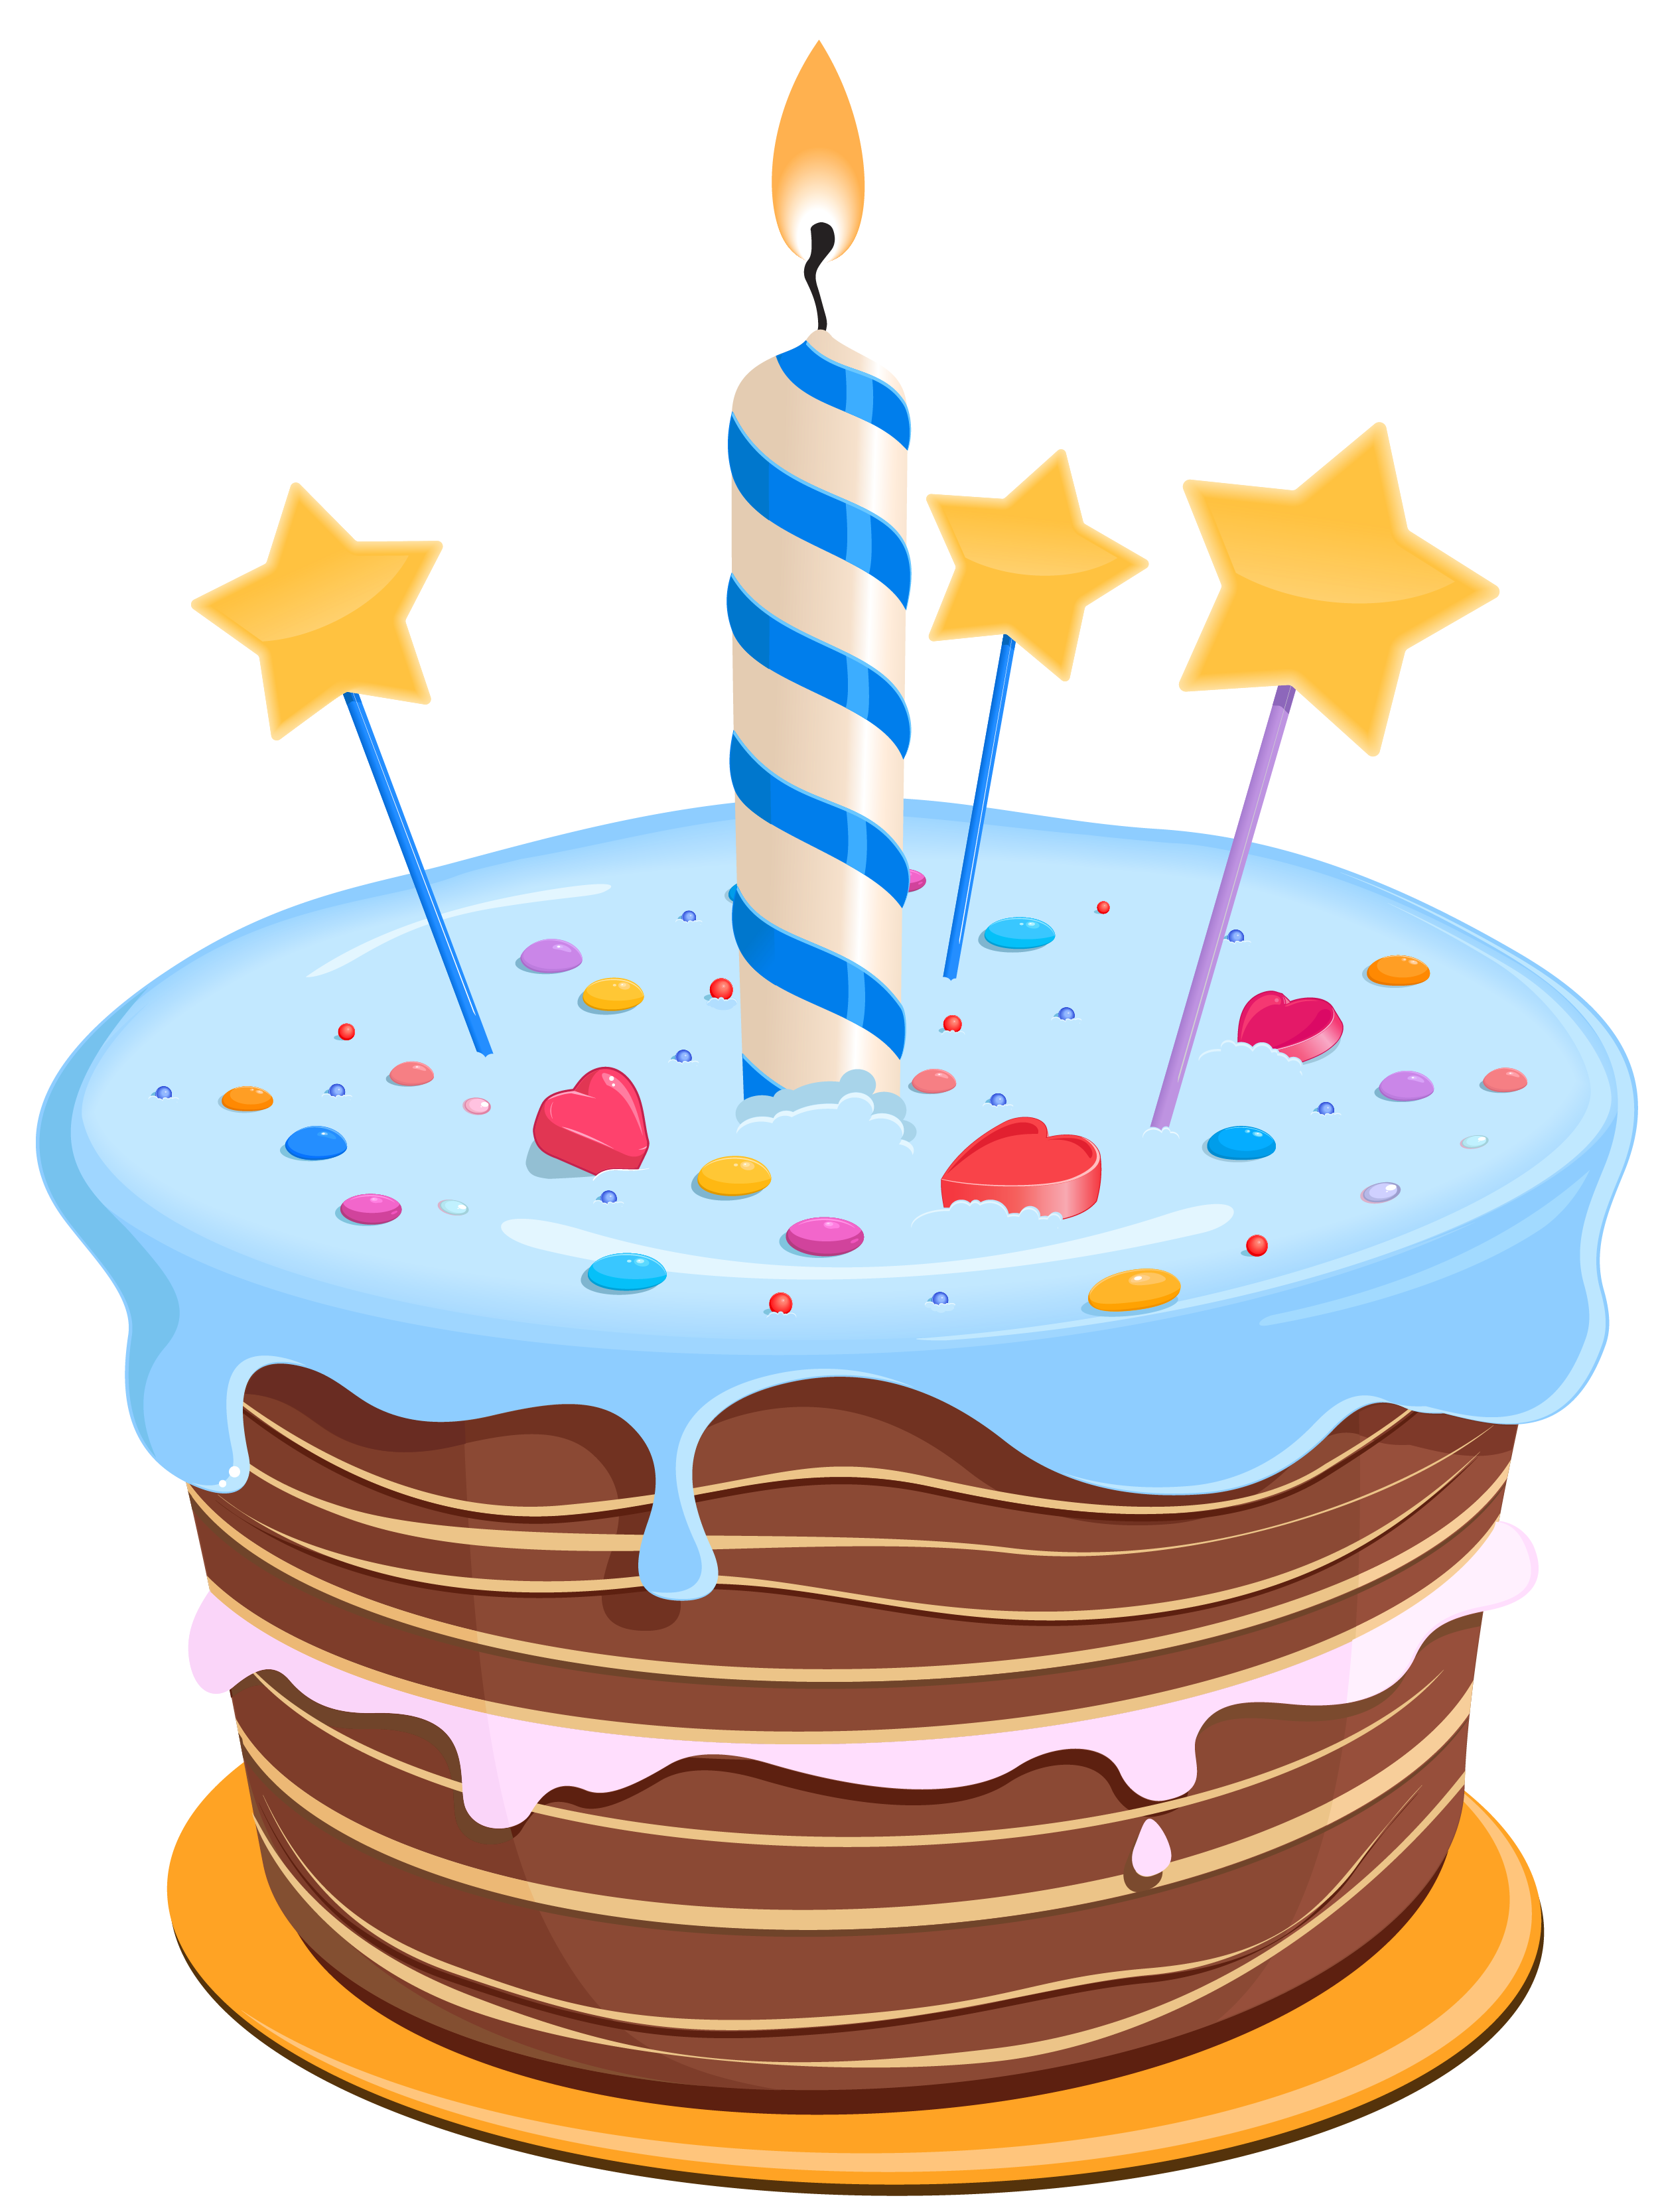 Birthday cake 1 clipart clipart royalty free 1st Birthday Cake Clipart   Free download best 1st Birthday Cake ... clipart royalty free